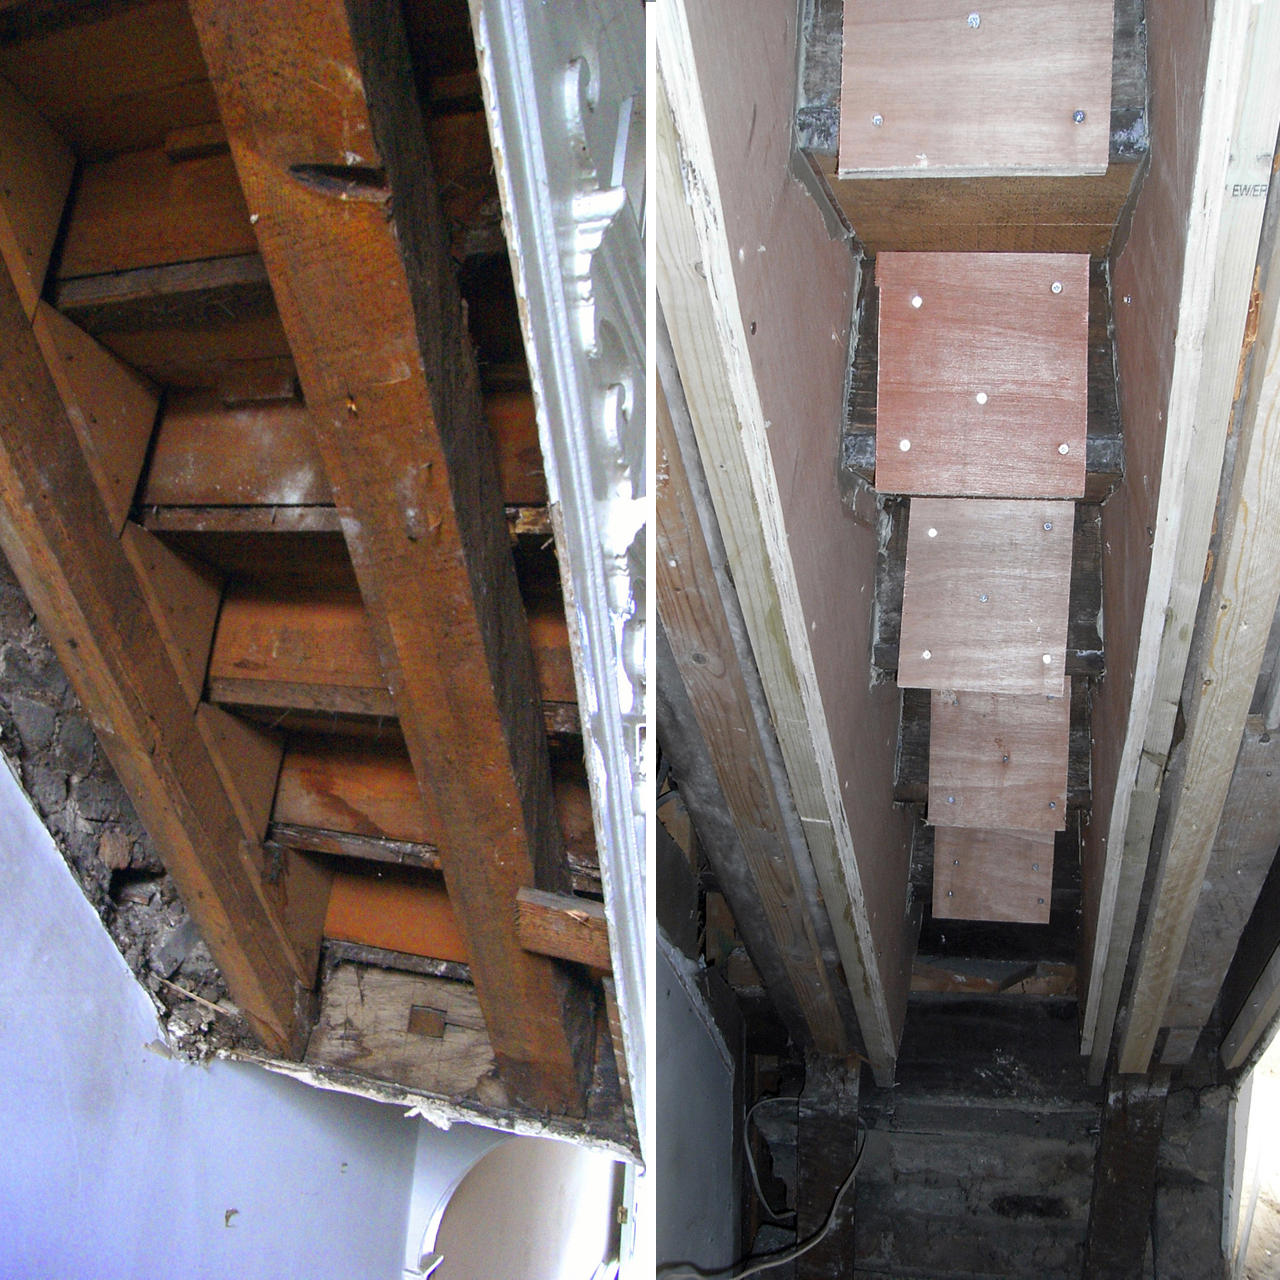 Staircase during before and after repairs